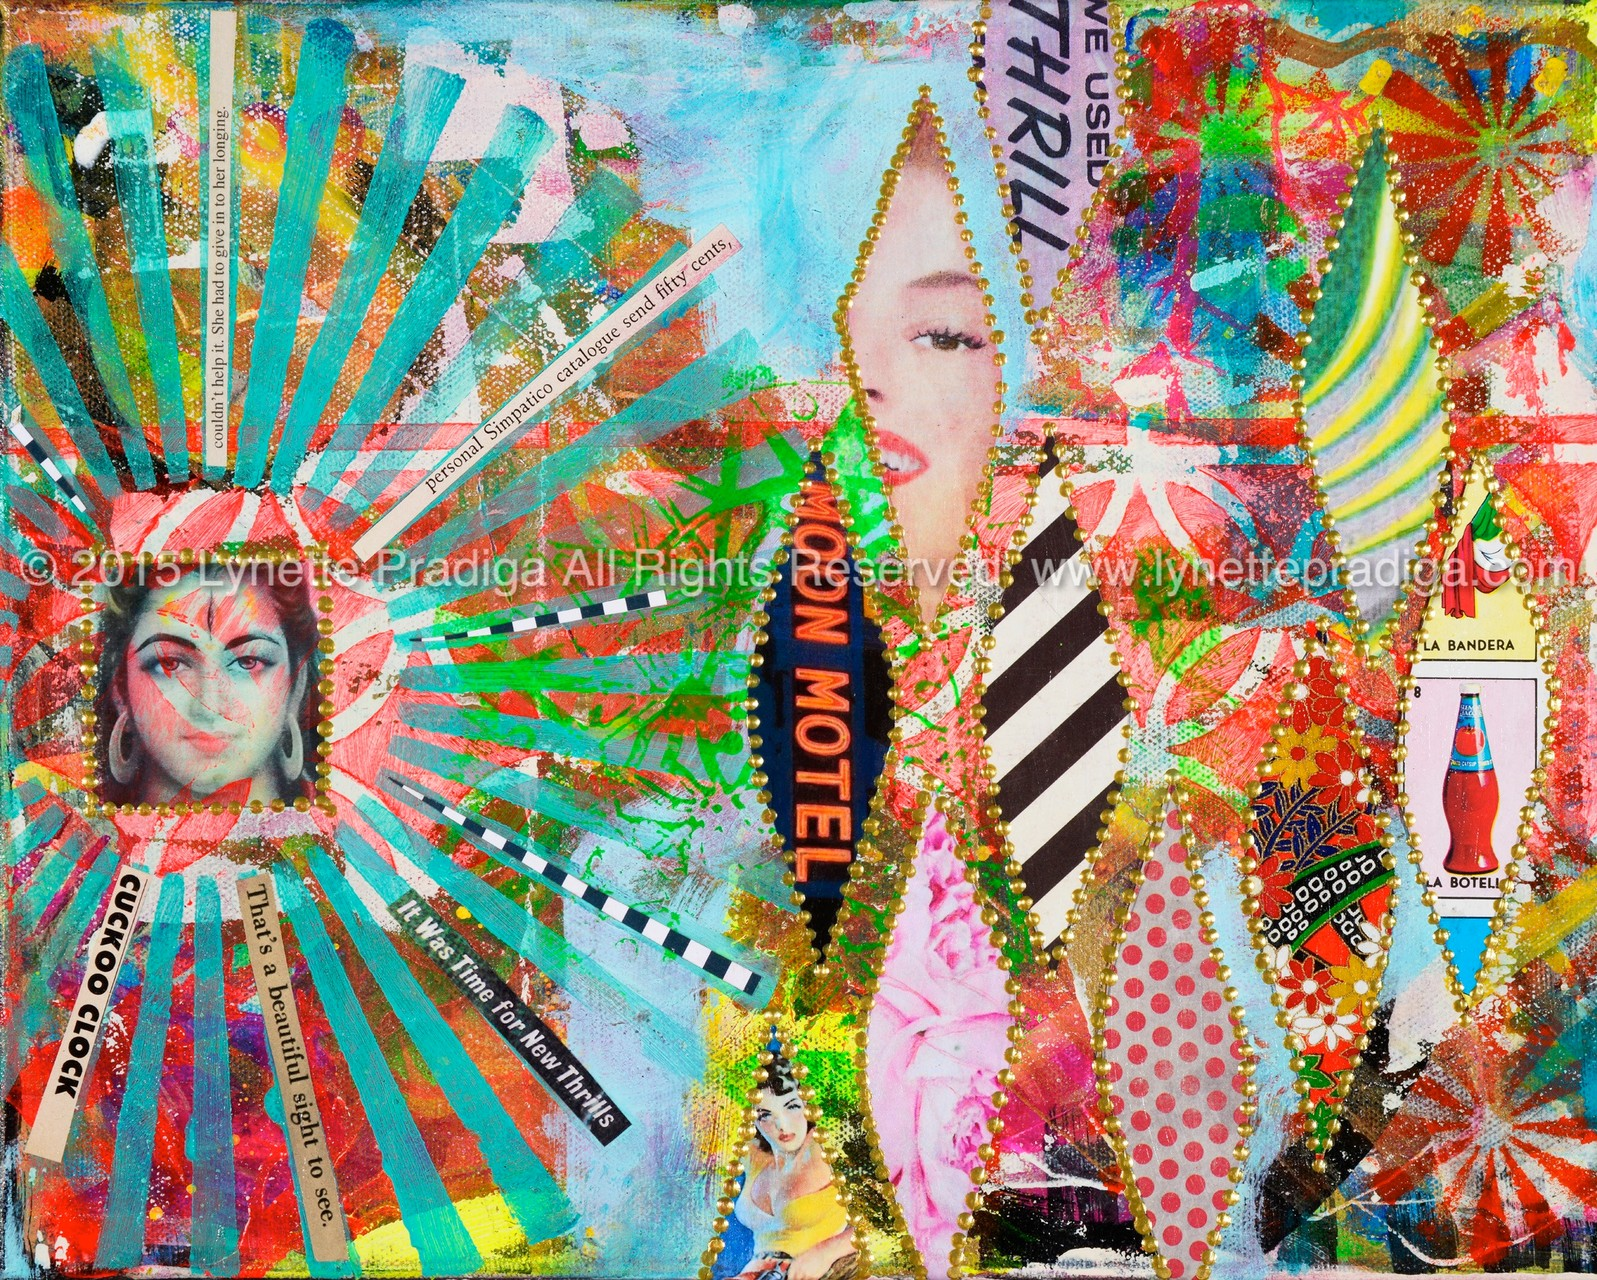 """Peepshow 1 -    24"""" x 30"""" x 2"""" Mixed Media, Krylon, Acrylic, Hand-made paper, irresistible curiosity, upholstery nails,& vintage snippets on canvas on board/ Original Available at the Enchantress Gallery by Bootzie in Wailea, Maui Hi"""